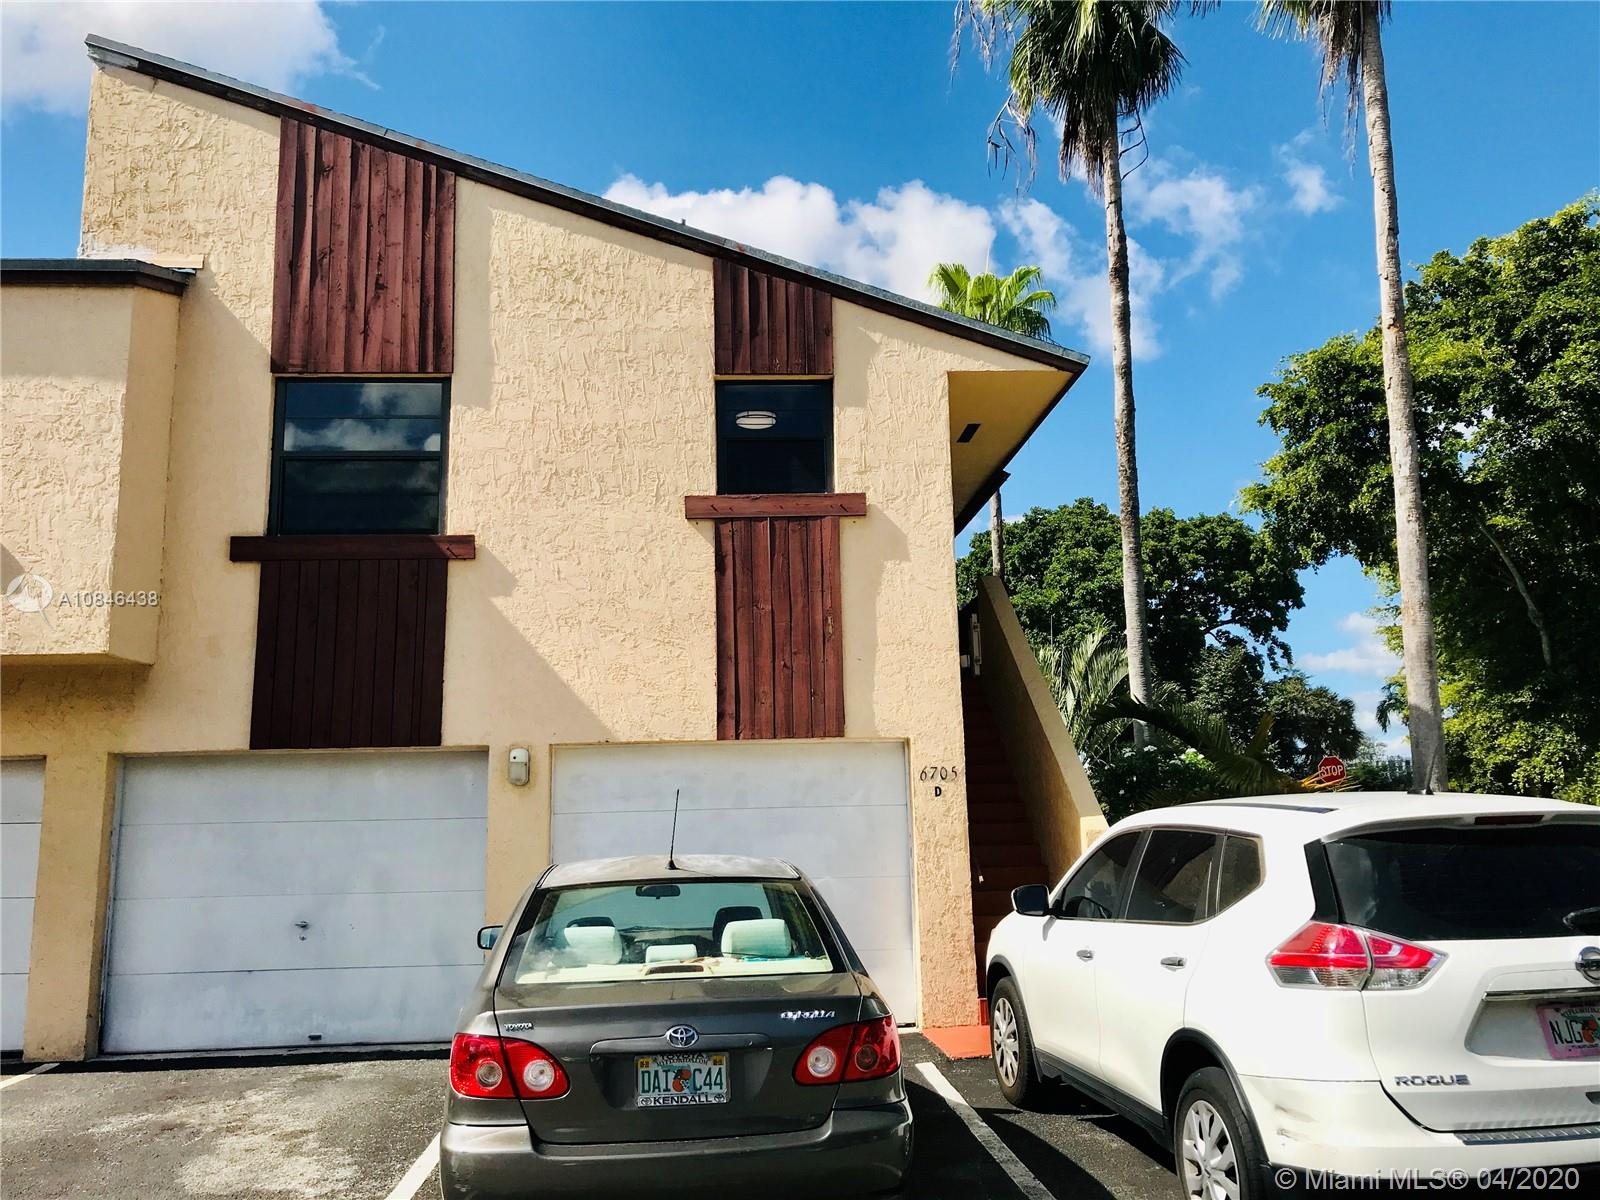 6705 SW 137th Ct # 13D, Miami, Florida 33183, 3 Bedrooms Bedrooms, ,2 BathroomsBathrooms,Residential,For Sale,6705 SW 137th Ct # 13D,A10846438